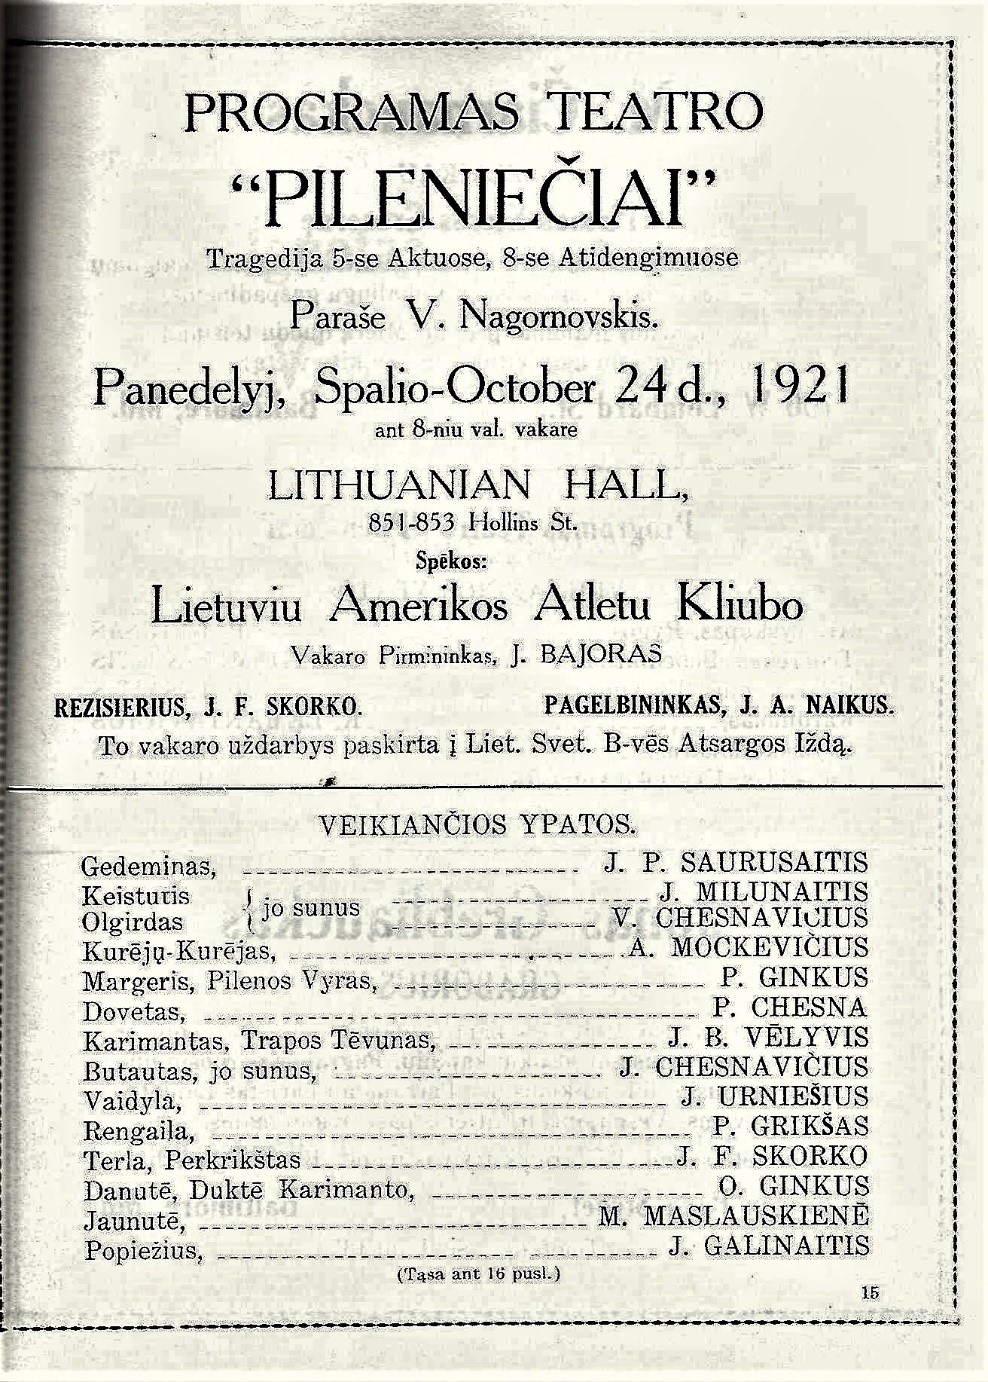 "Playbill for the Drama ""Pilienieciai,"" October 24, 1921"